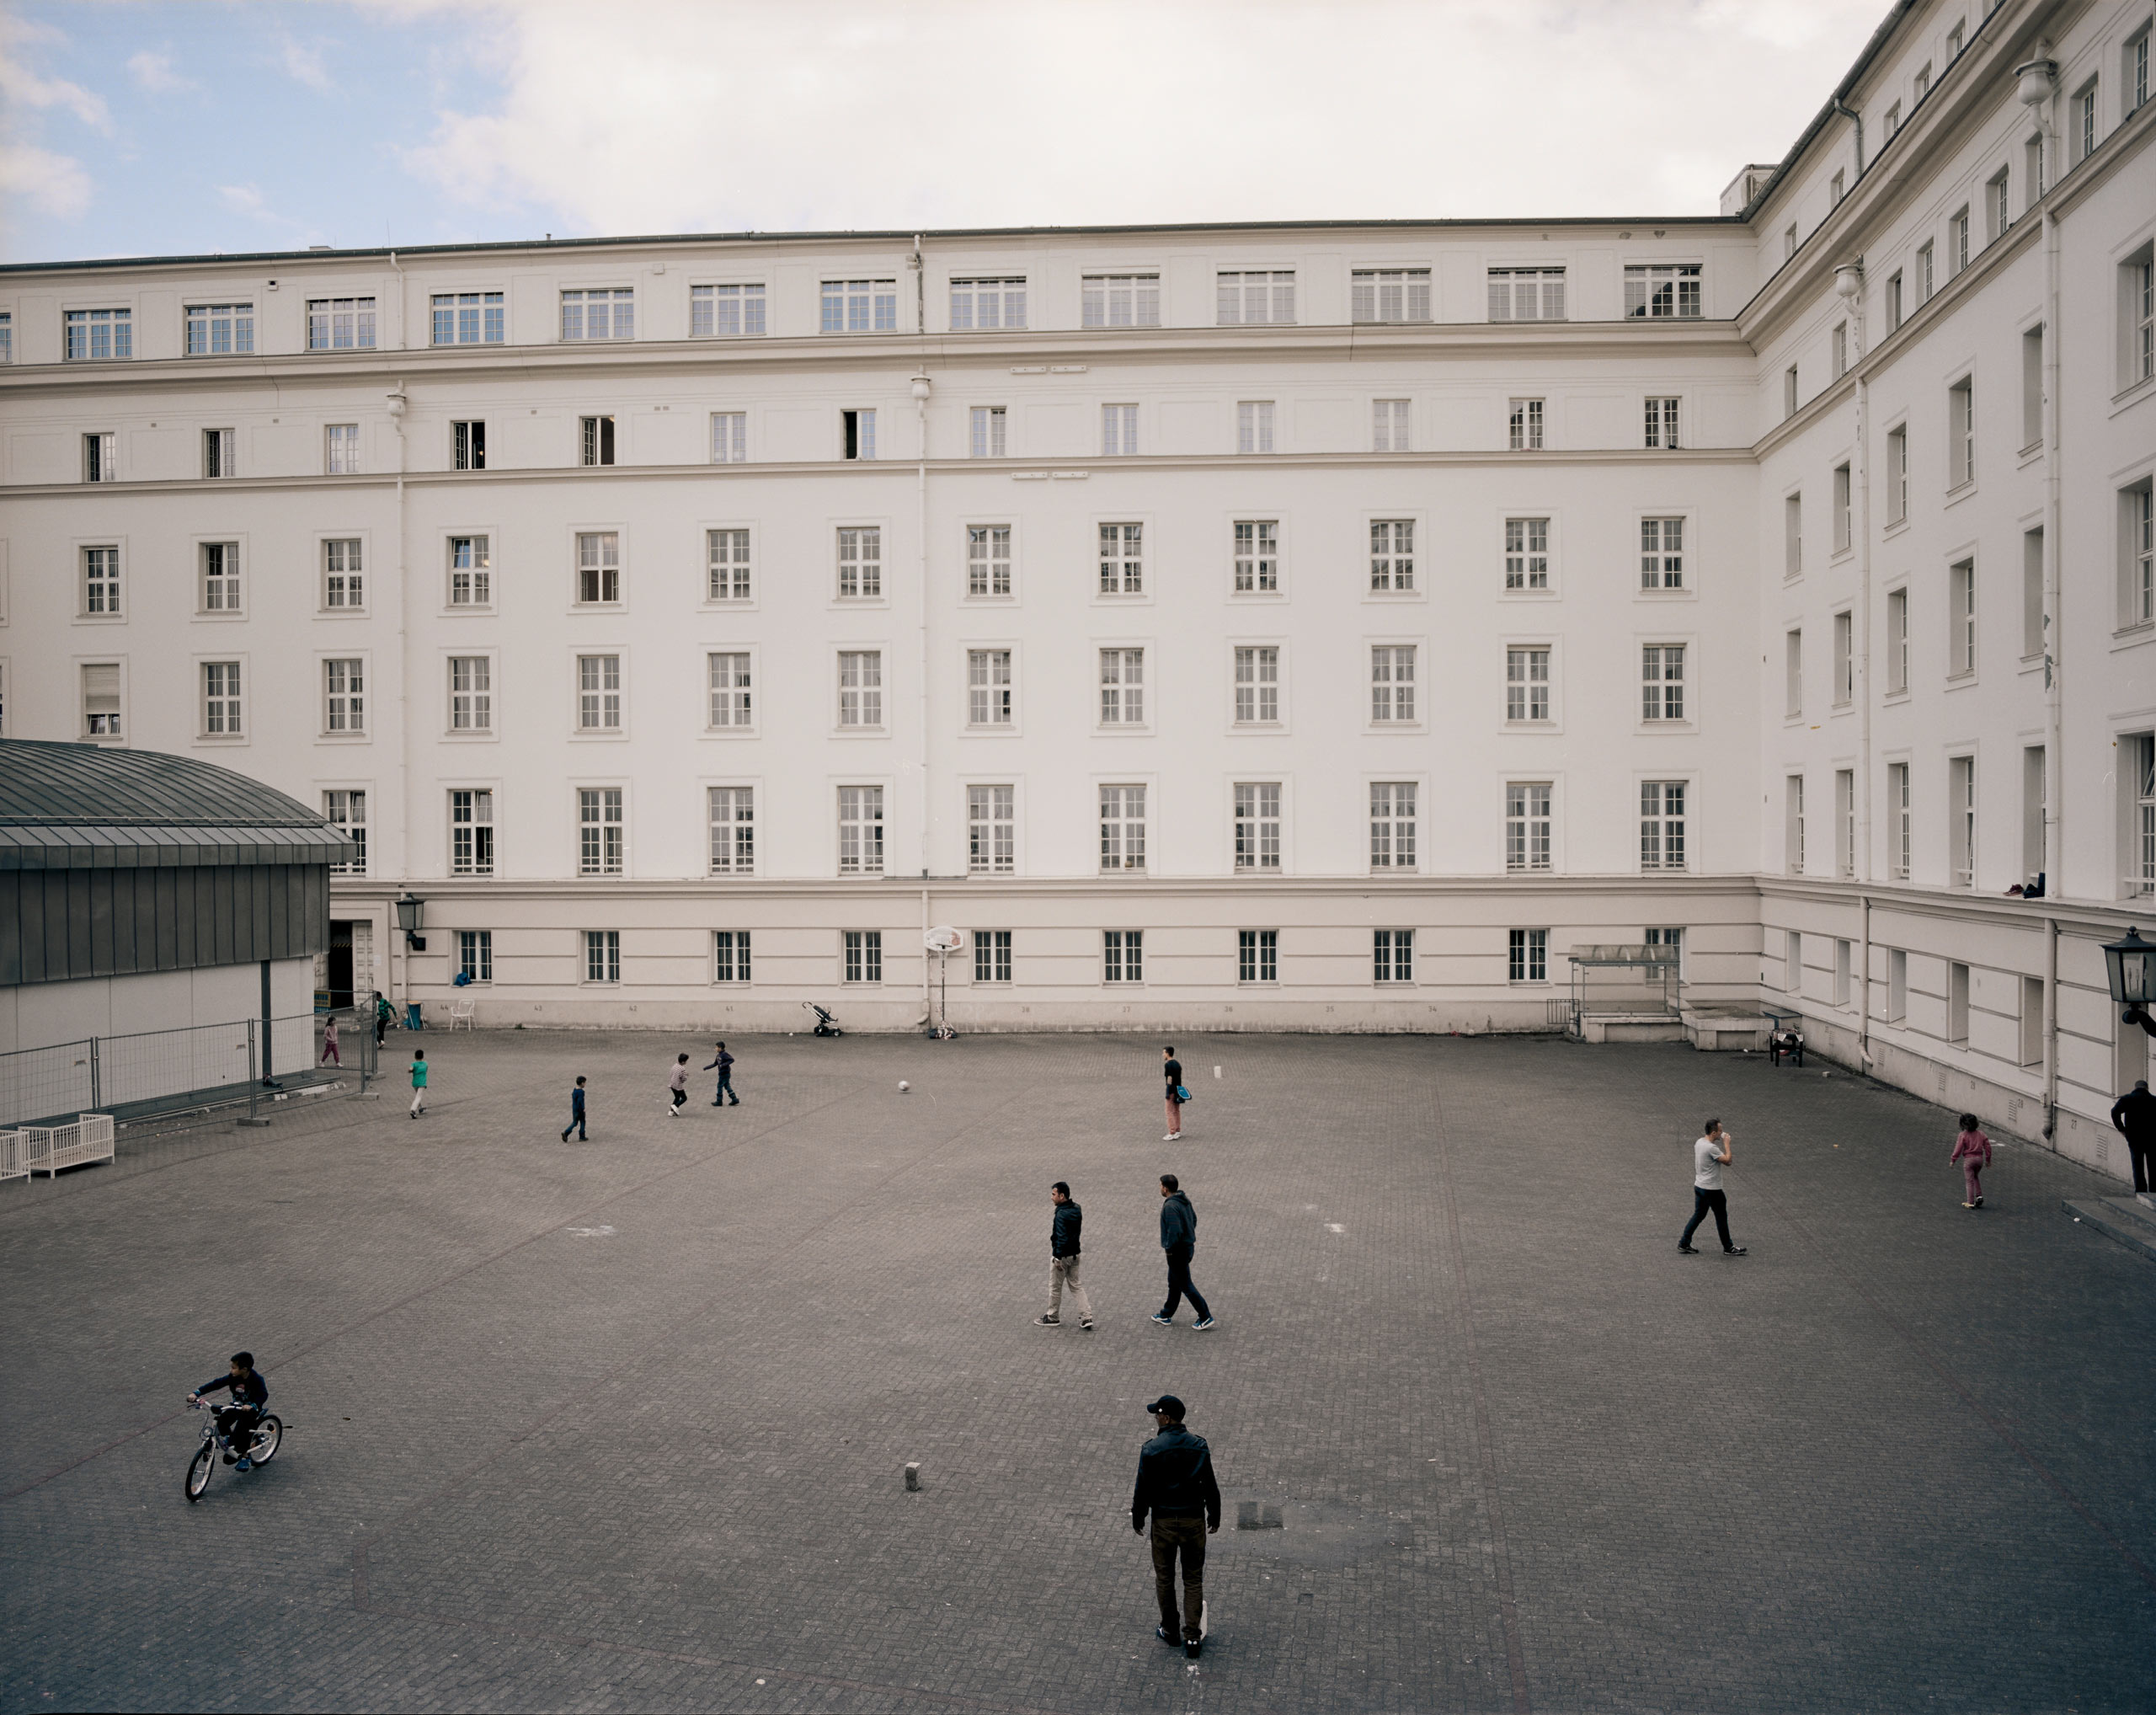 Children play in the courtyard of the former city hall in the district of Wilmersdorf, Berlin. Volunteers helped convert it into a reception center for refugees in mid-August.